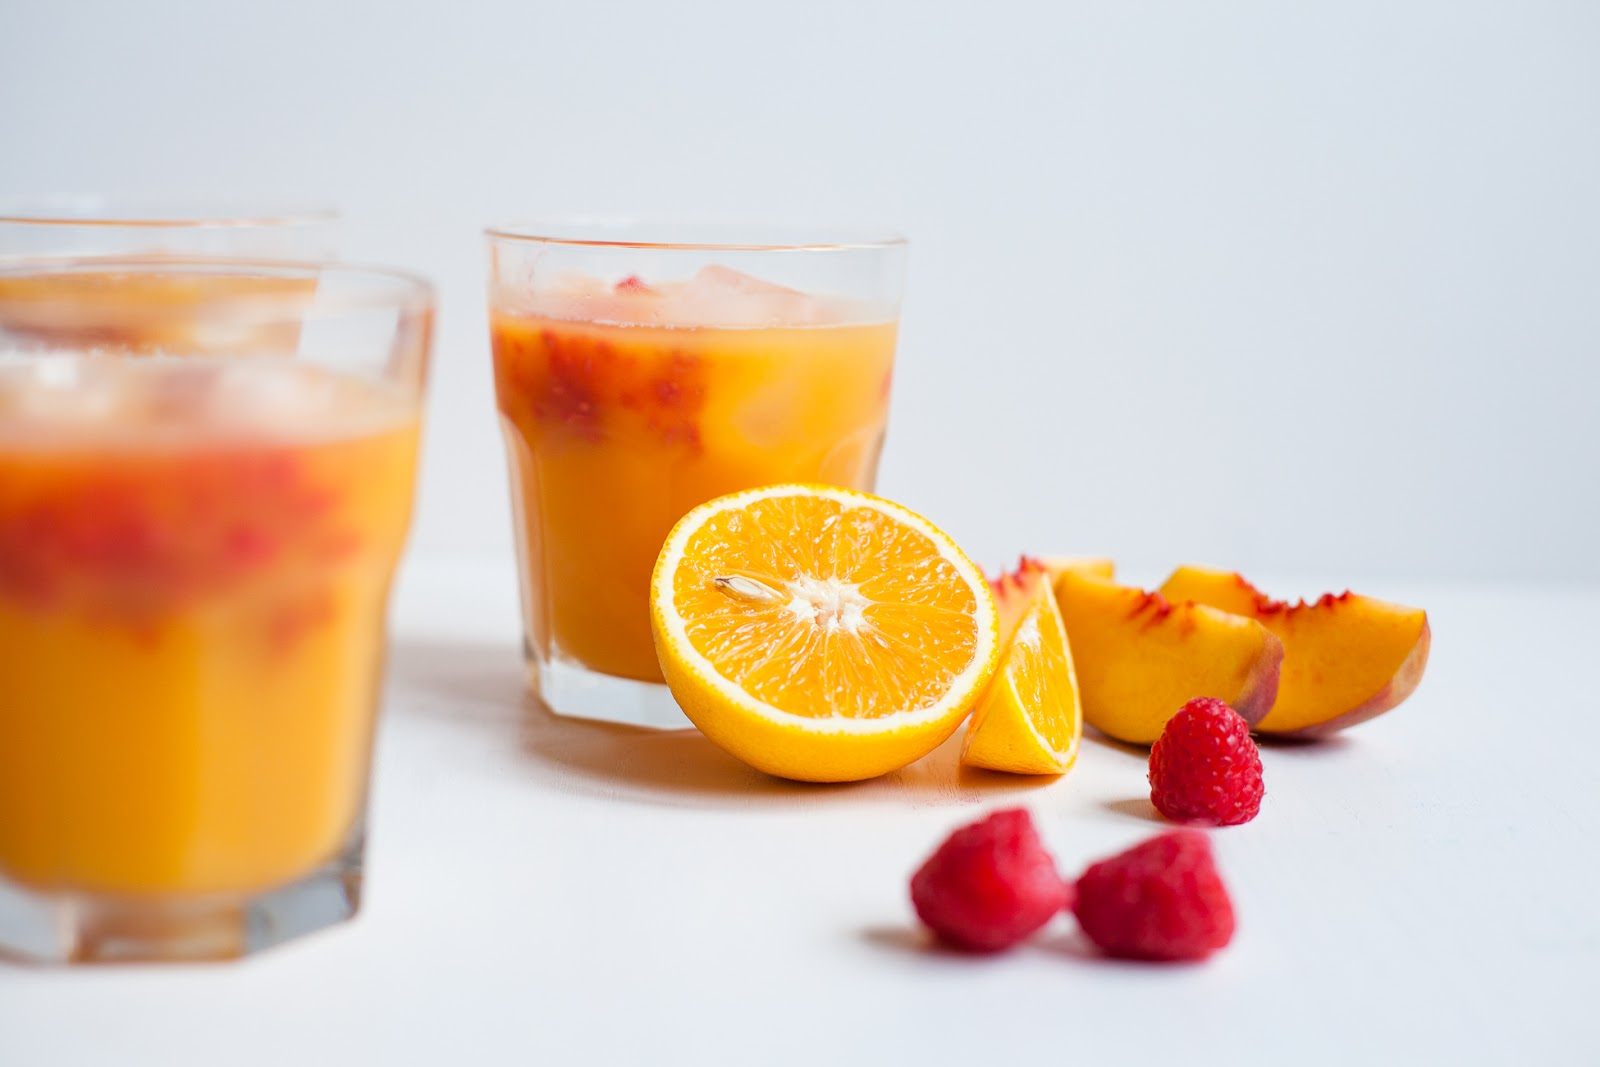 Morning Sunrise – Orange, Peach and Raspberry Juice / blog.jchongstudio.com